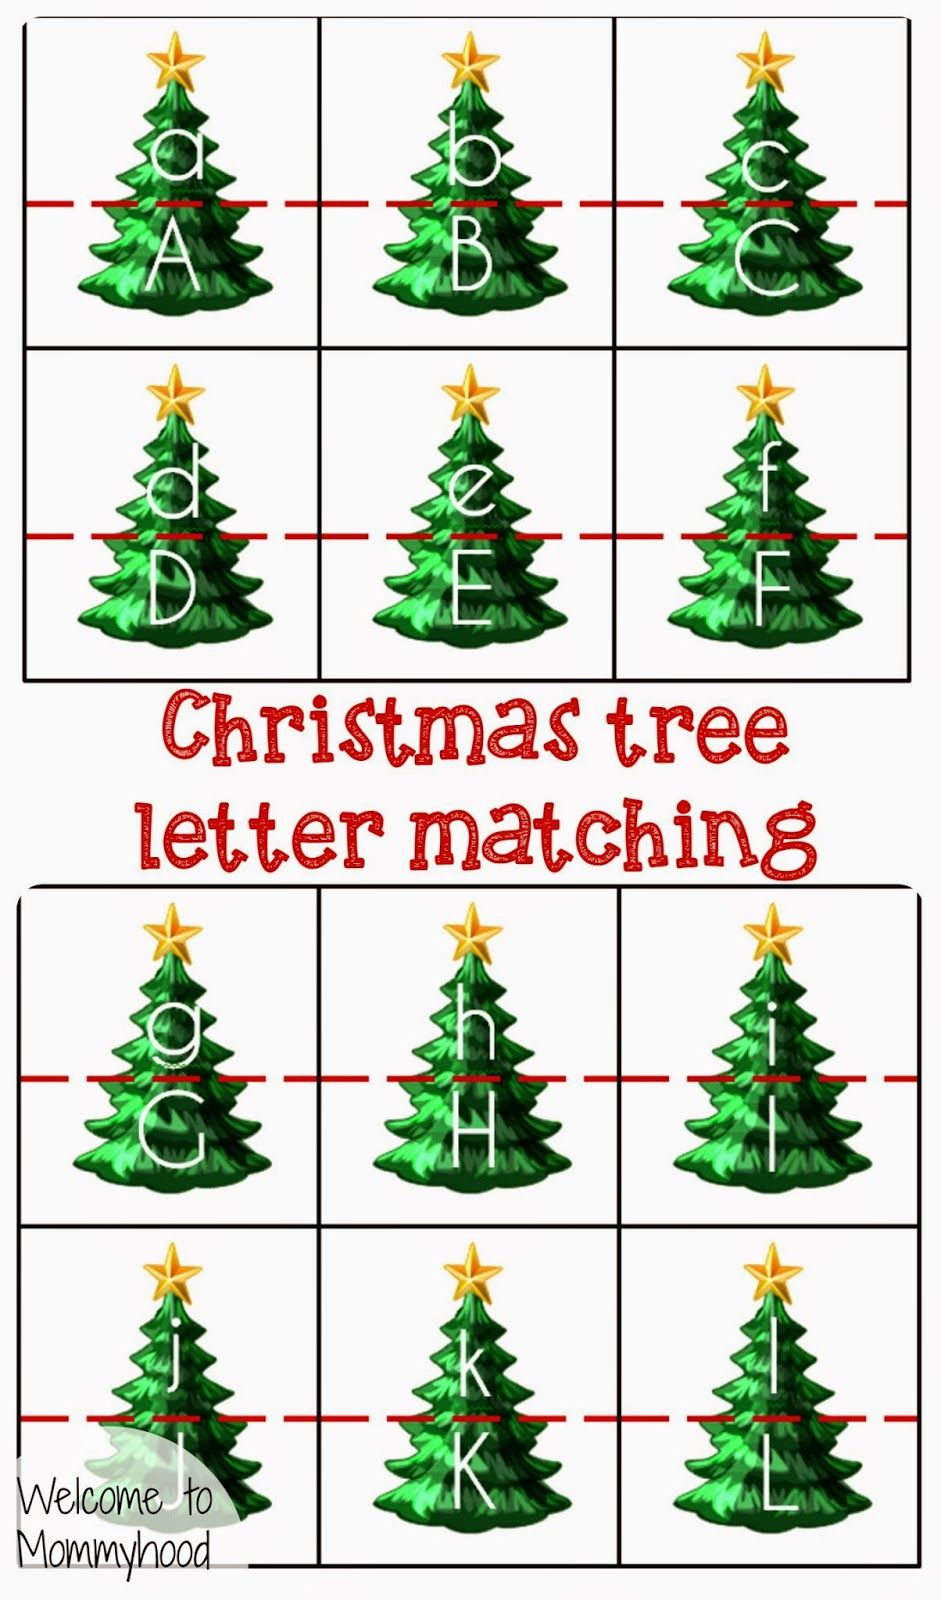 Christmas tree letter matching to Mommyhood